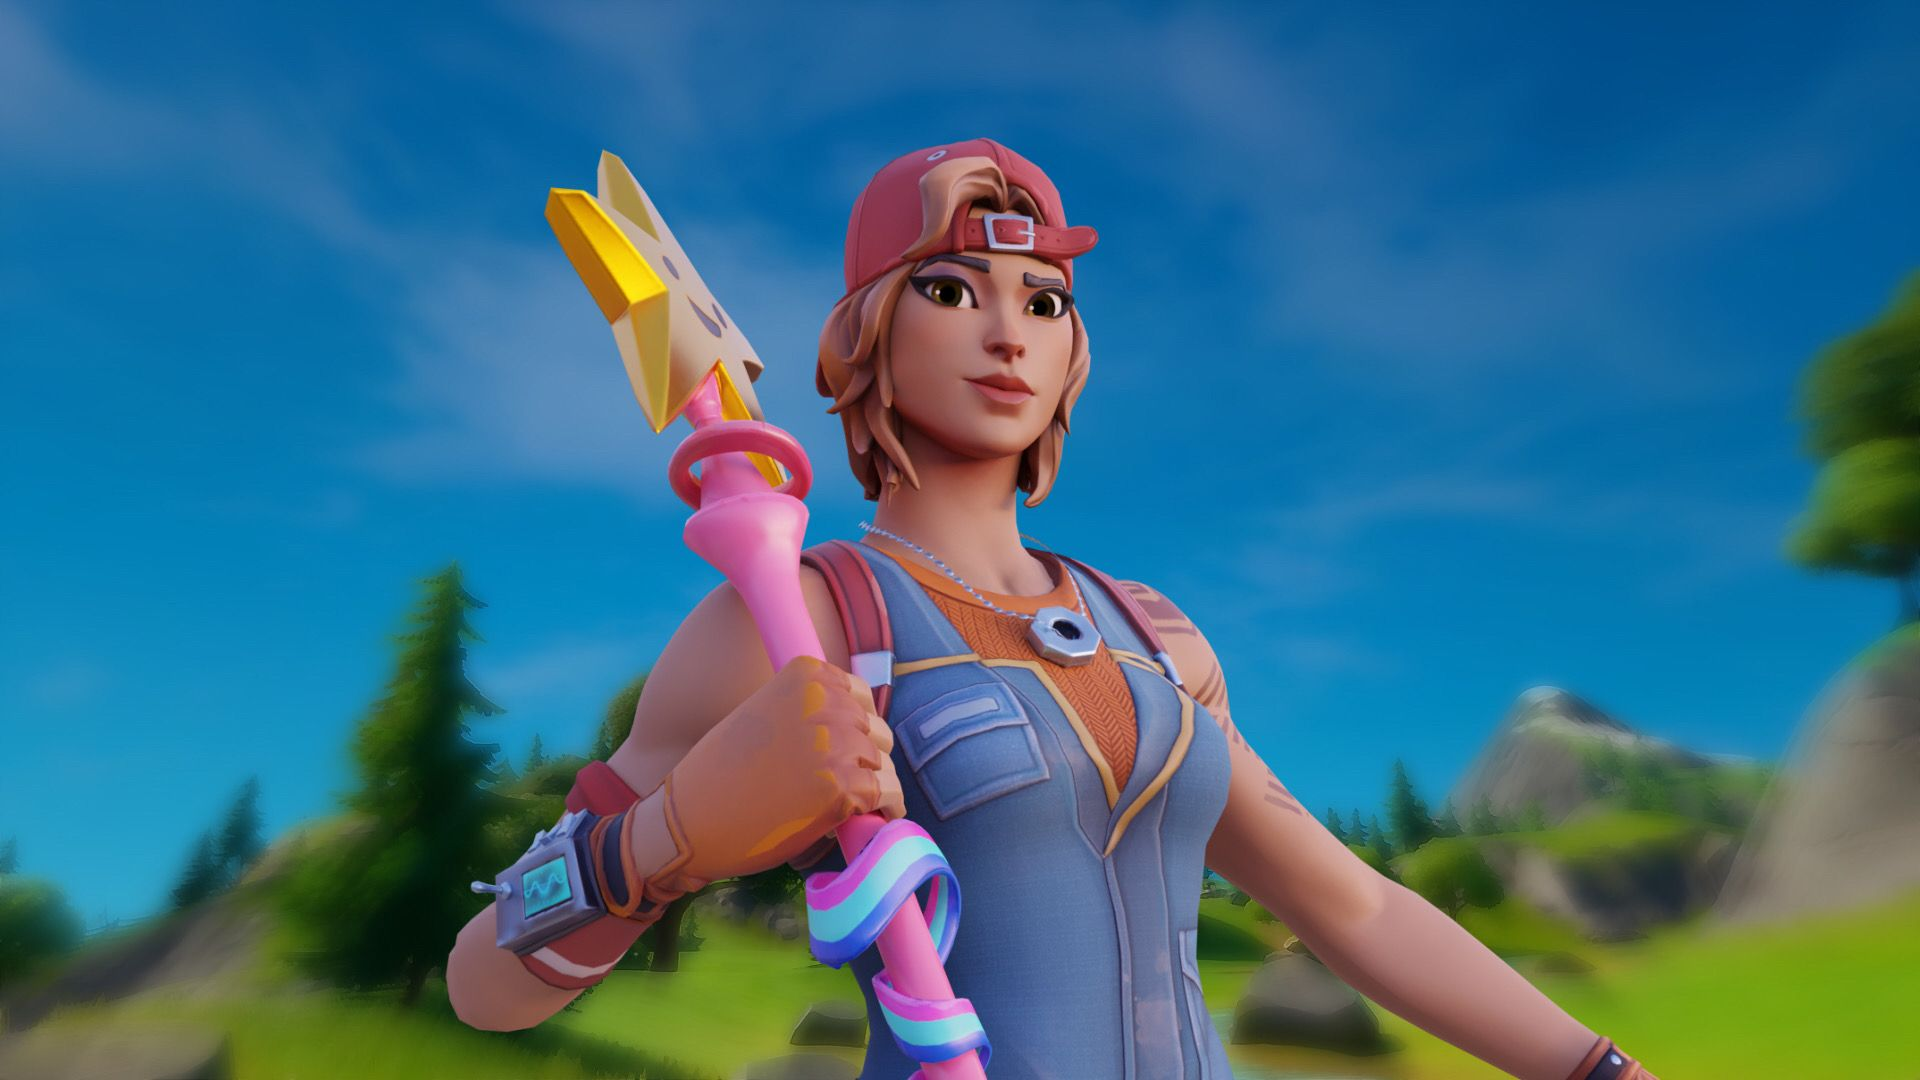 Freetoedit Hi I Make Thumbnails And Cool Fortnite Stuff Im In Cynic Clan I Use Pi Best Gaming Wallpapers Best Profile Pictures Gaming Profile Pictures